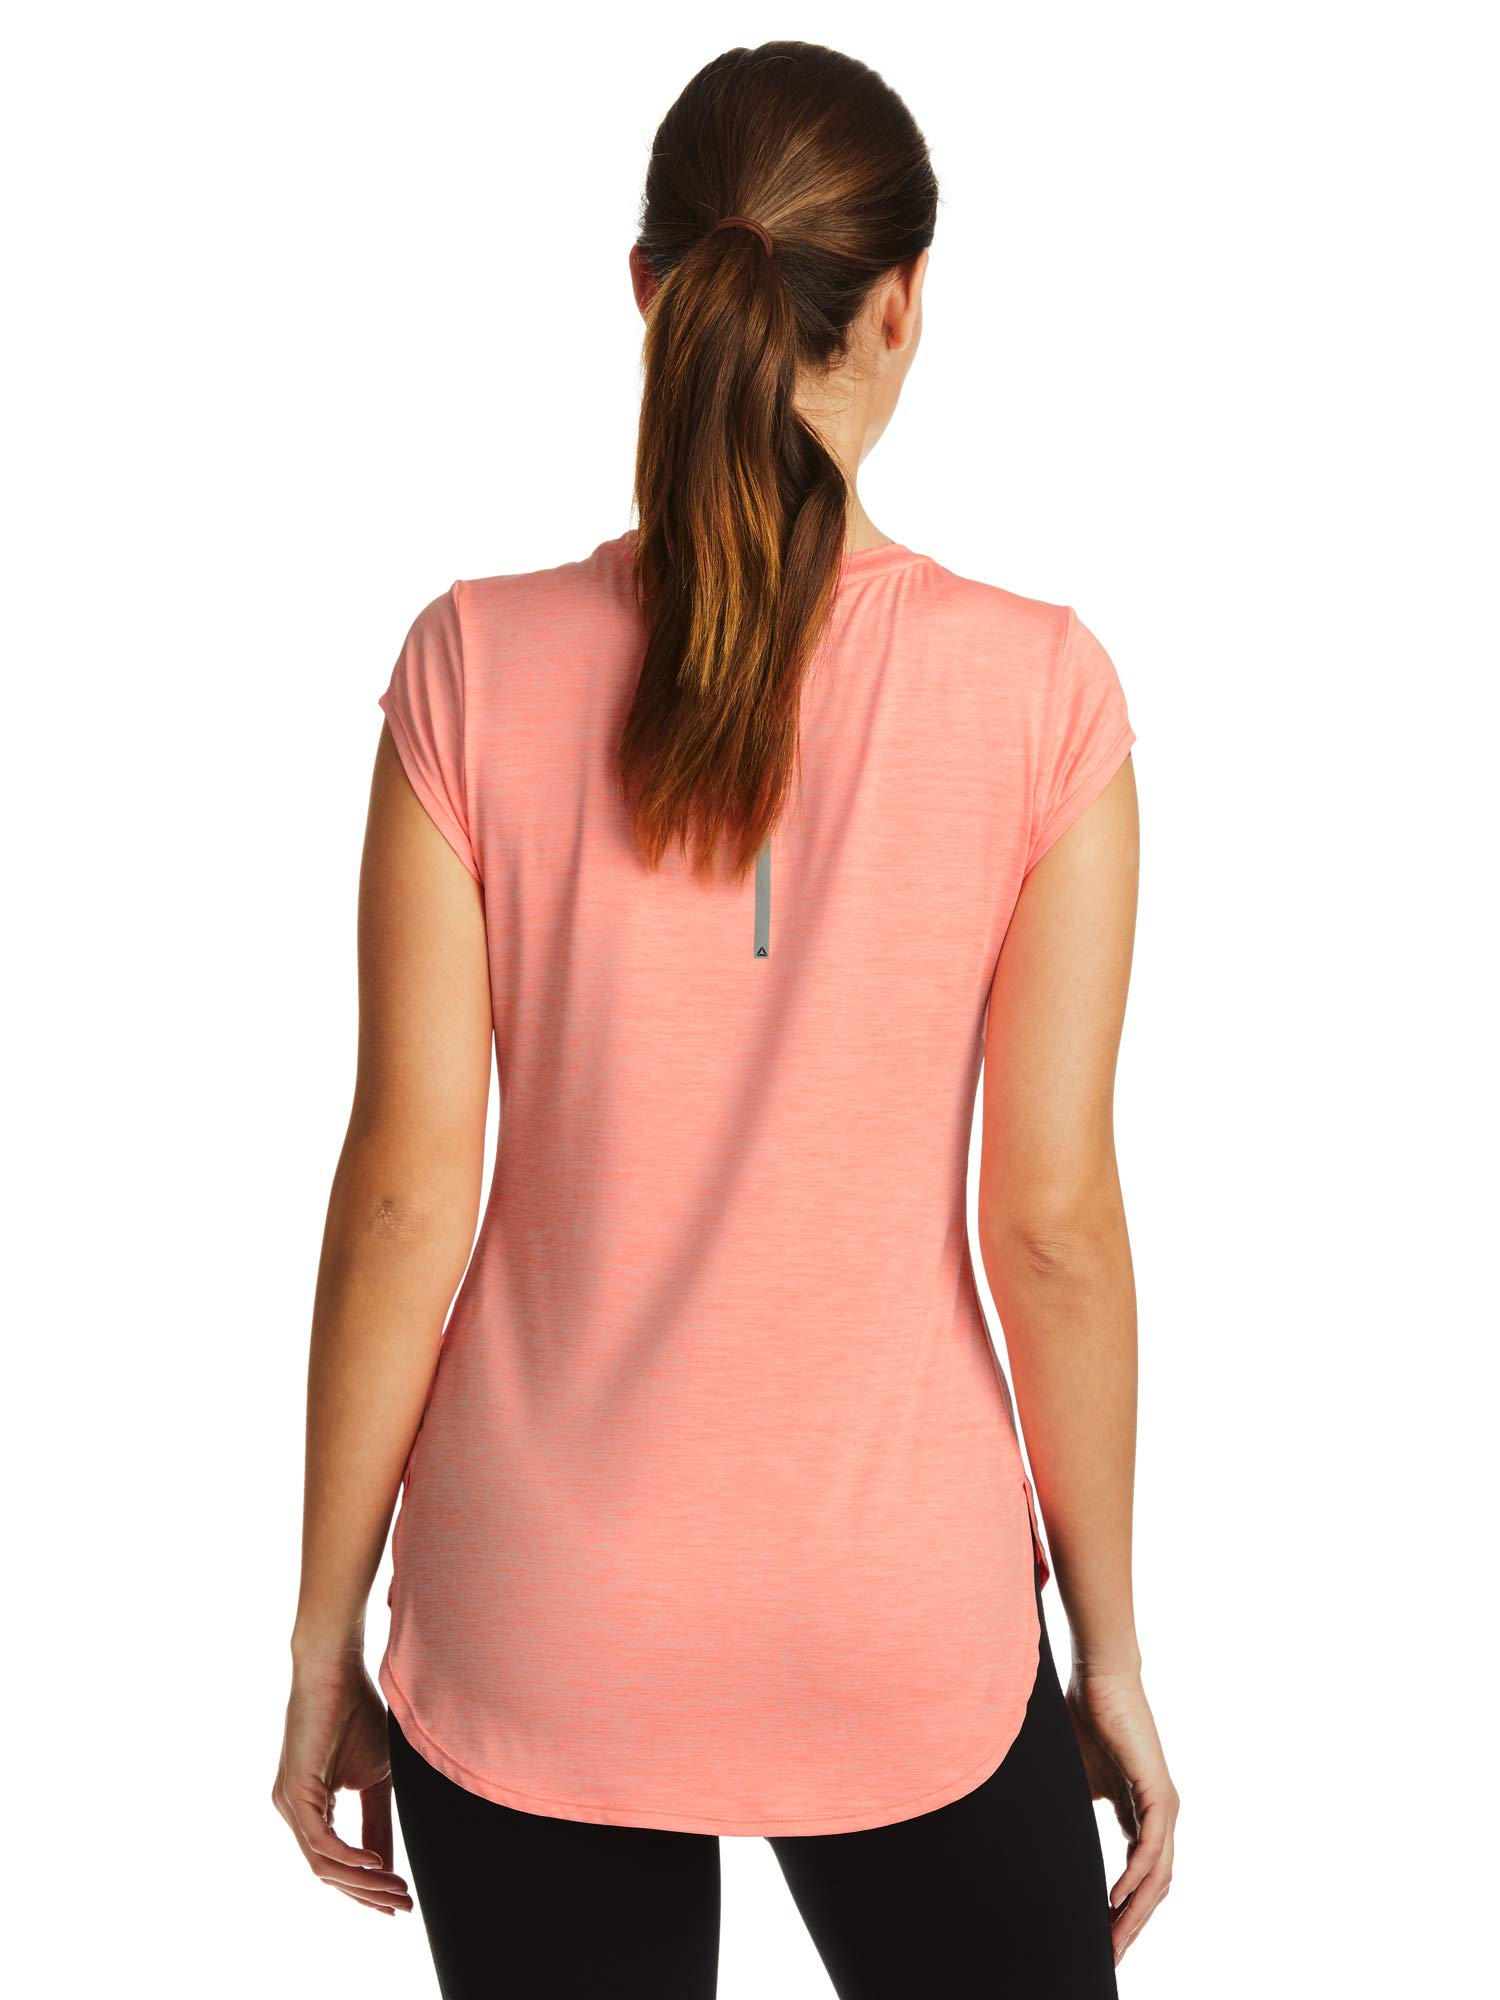 Reebok Women's Legend Performance Top Short Sleeve T-Shirt - Coral Flare Heather, X-Small by Reebok (Image #3)